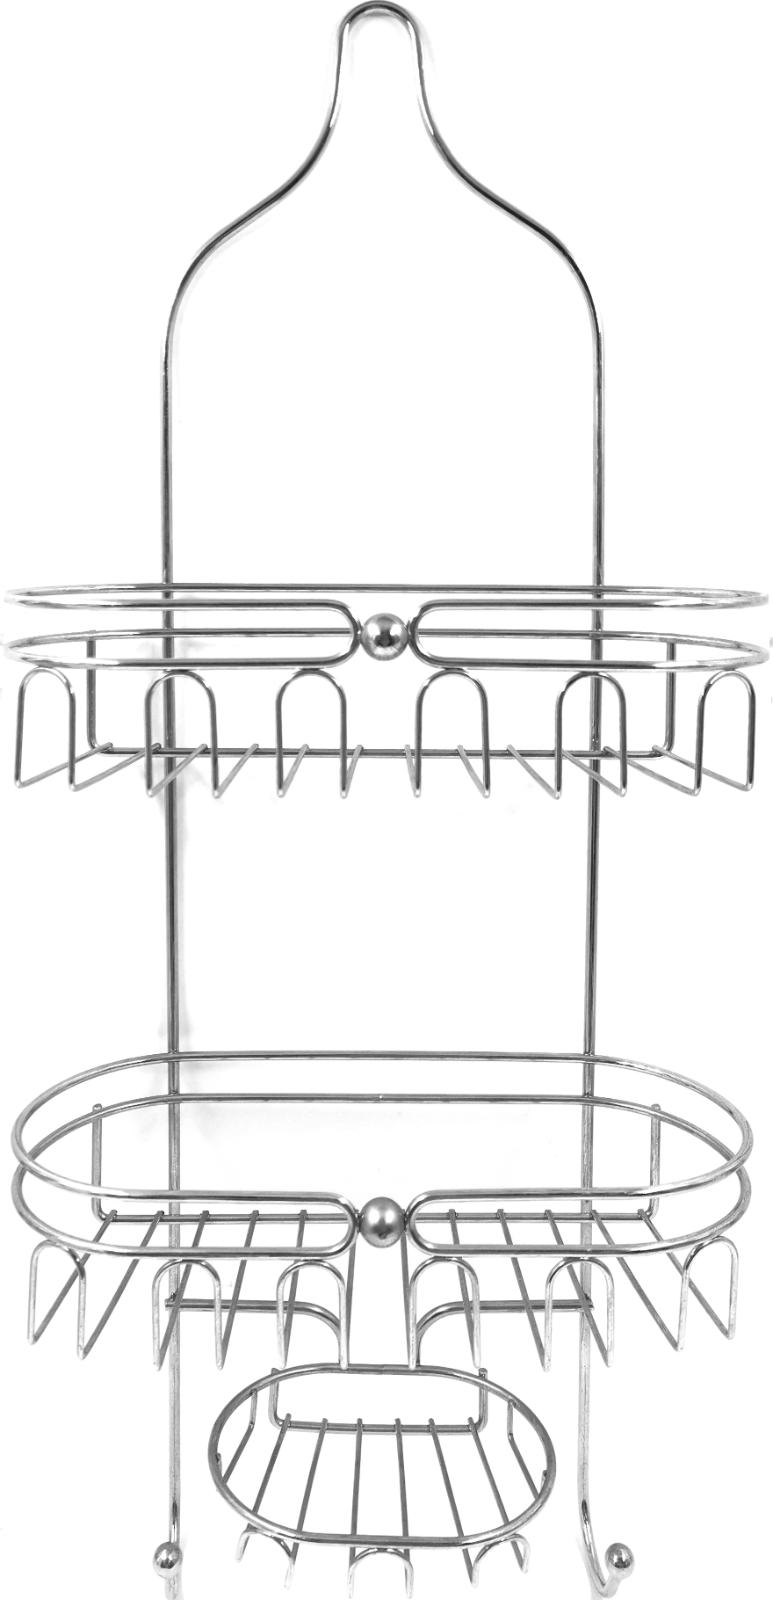 stainless steel bathroom tub and shower caddy